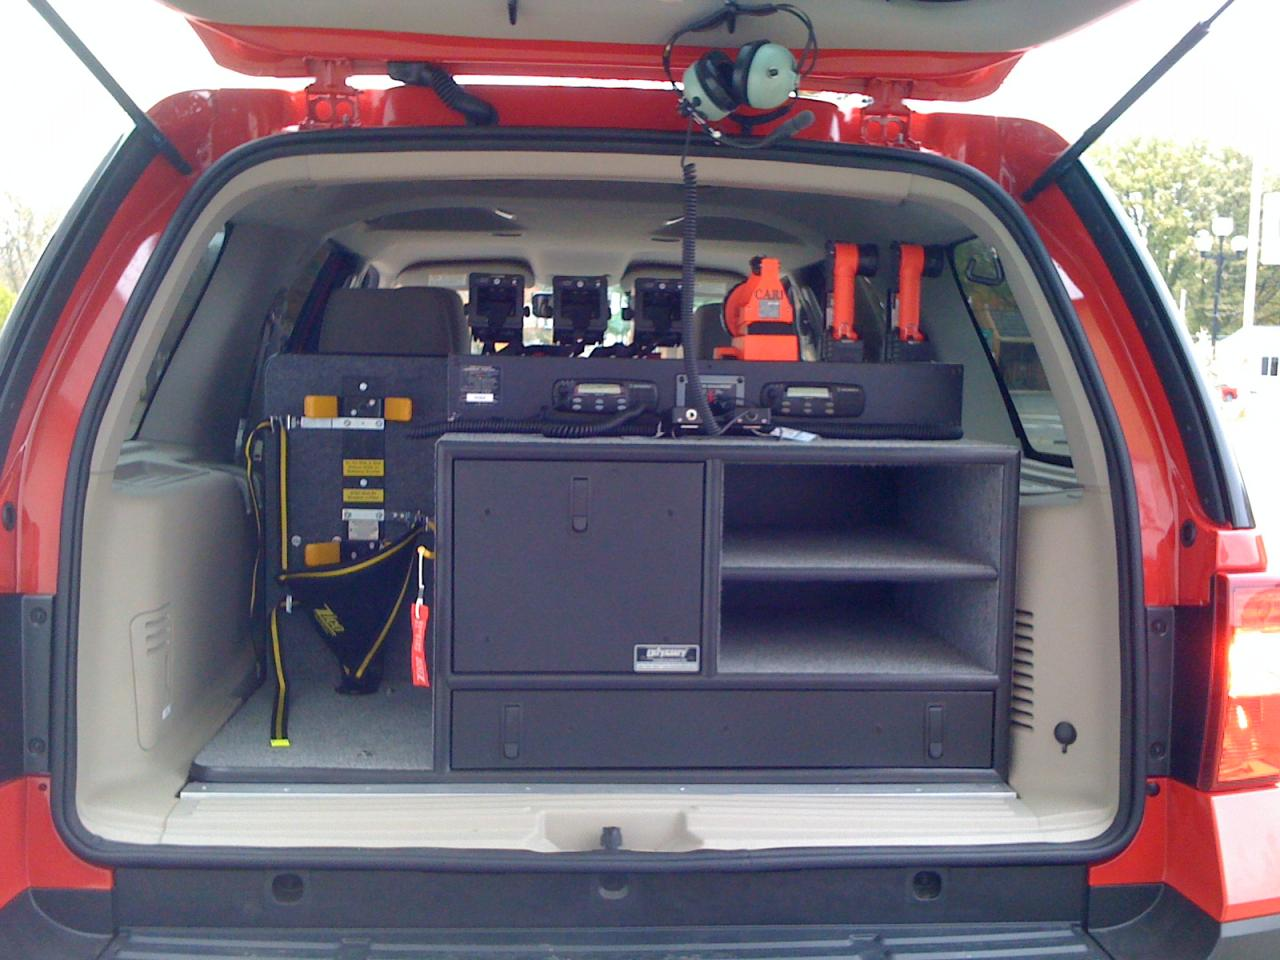 Car Audio Setup Guide further Car Audio Capacitor Battery together with Stereo besides Car Sounds also Car Audio System Wiring Basics. on capacitor sound system setup